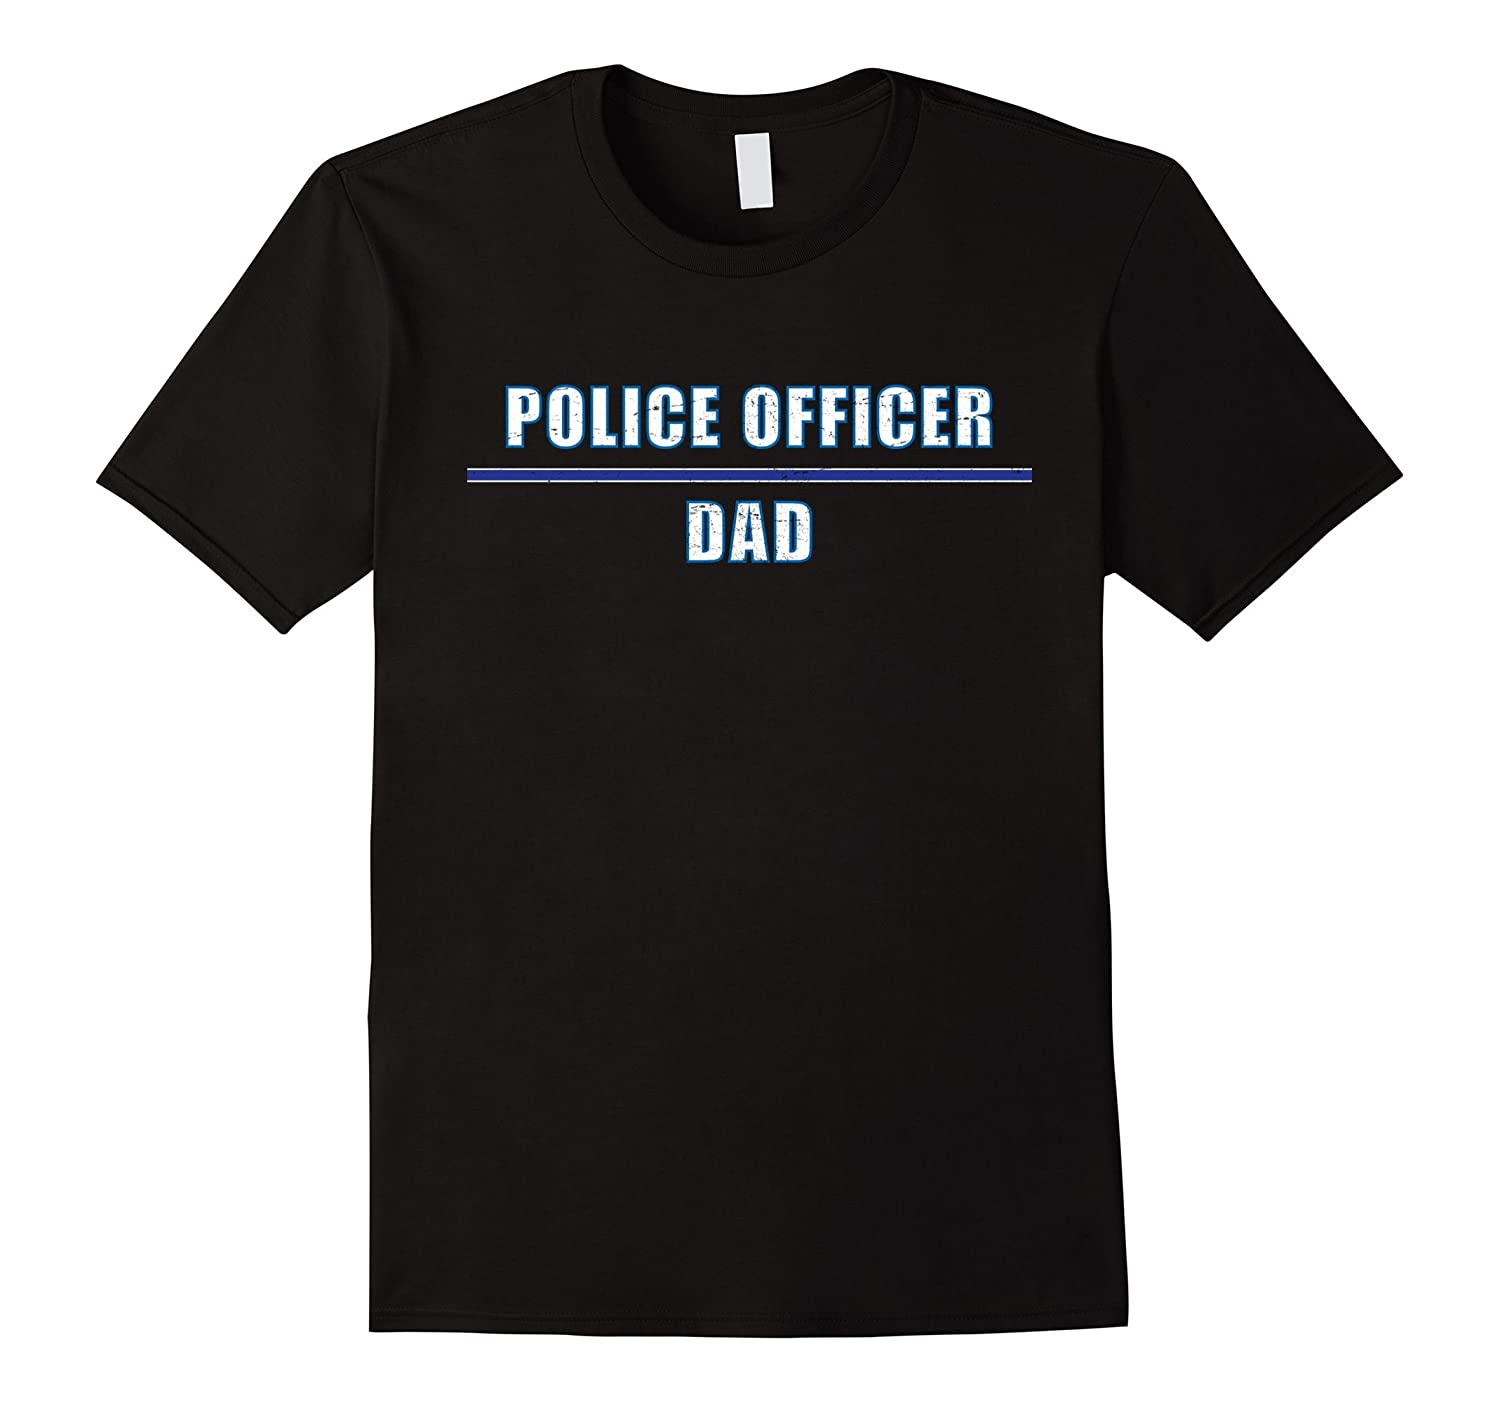 """Police Officer Dad"" awesome t-shirt for the hero you know"